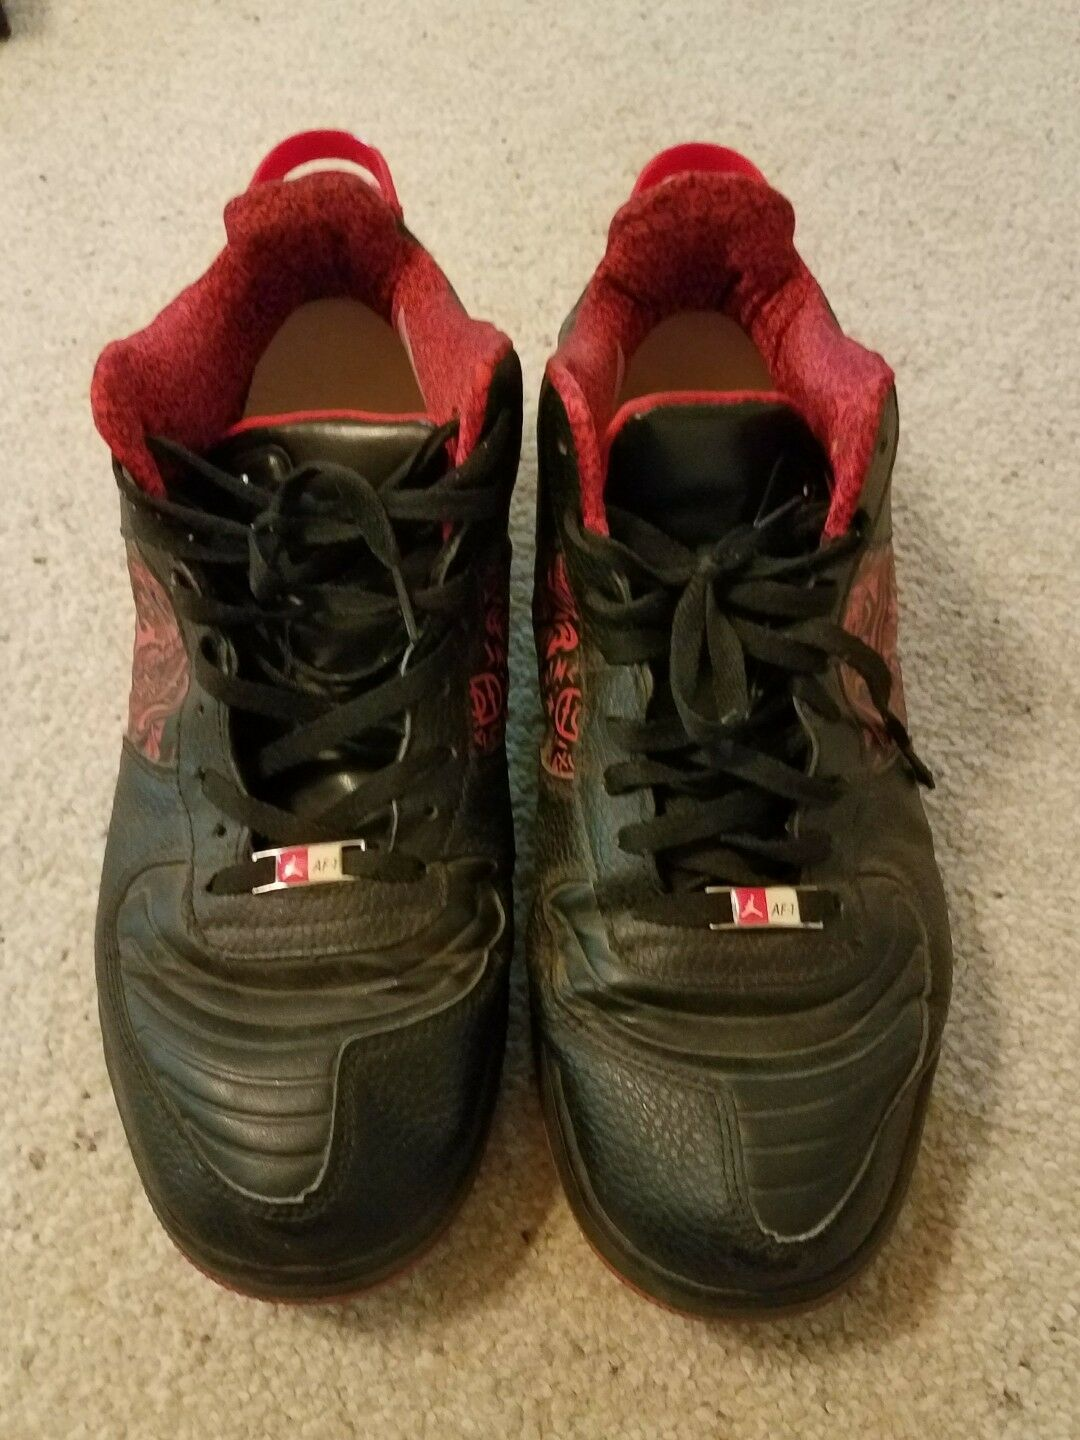 Nike Air Jordan Fusion 20 black red size 12 Best of Both Worlds sneakers shoes Cheap women's shoes women's shoes